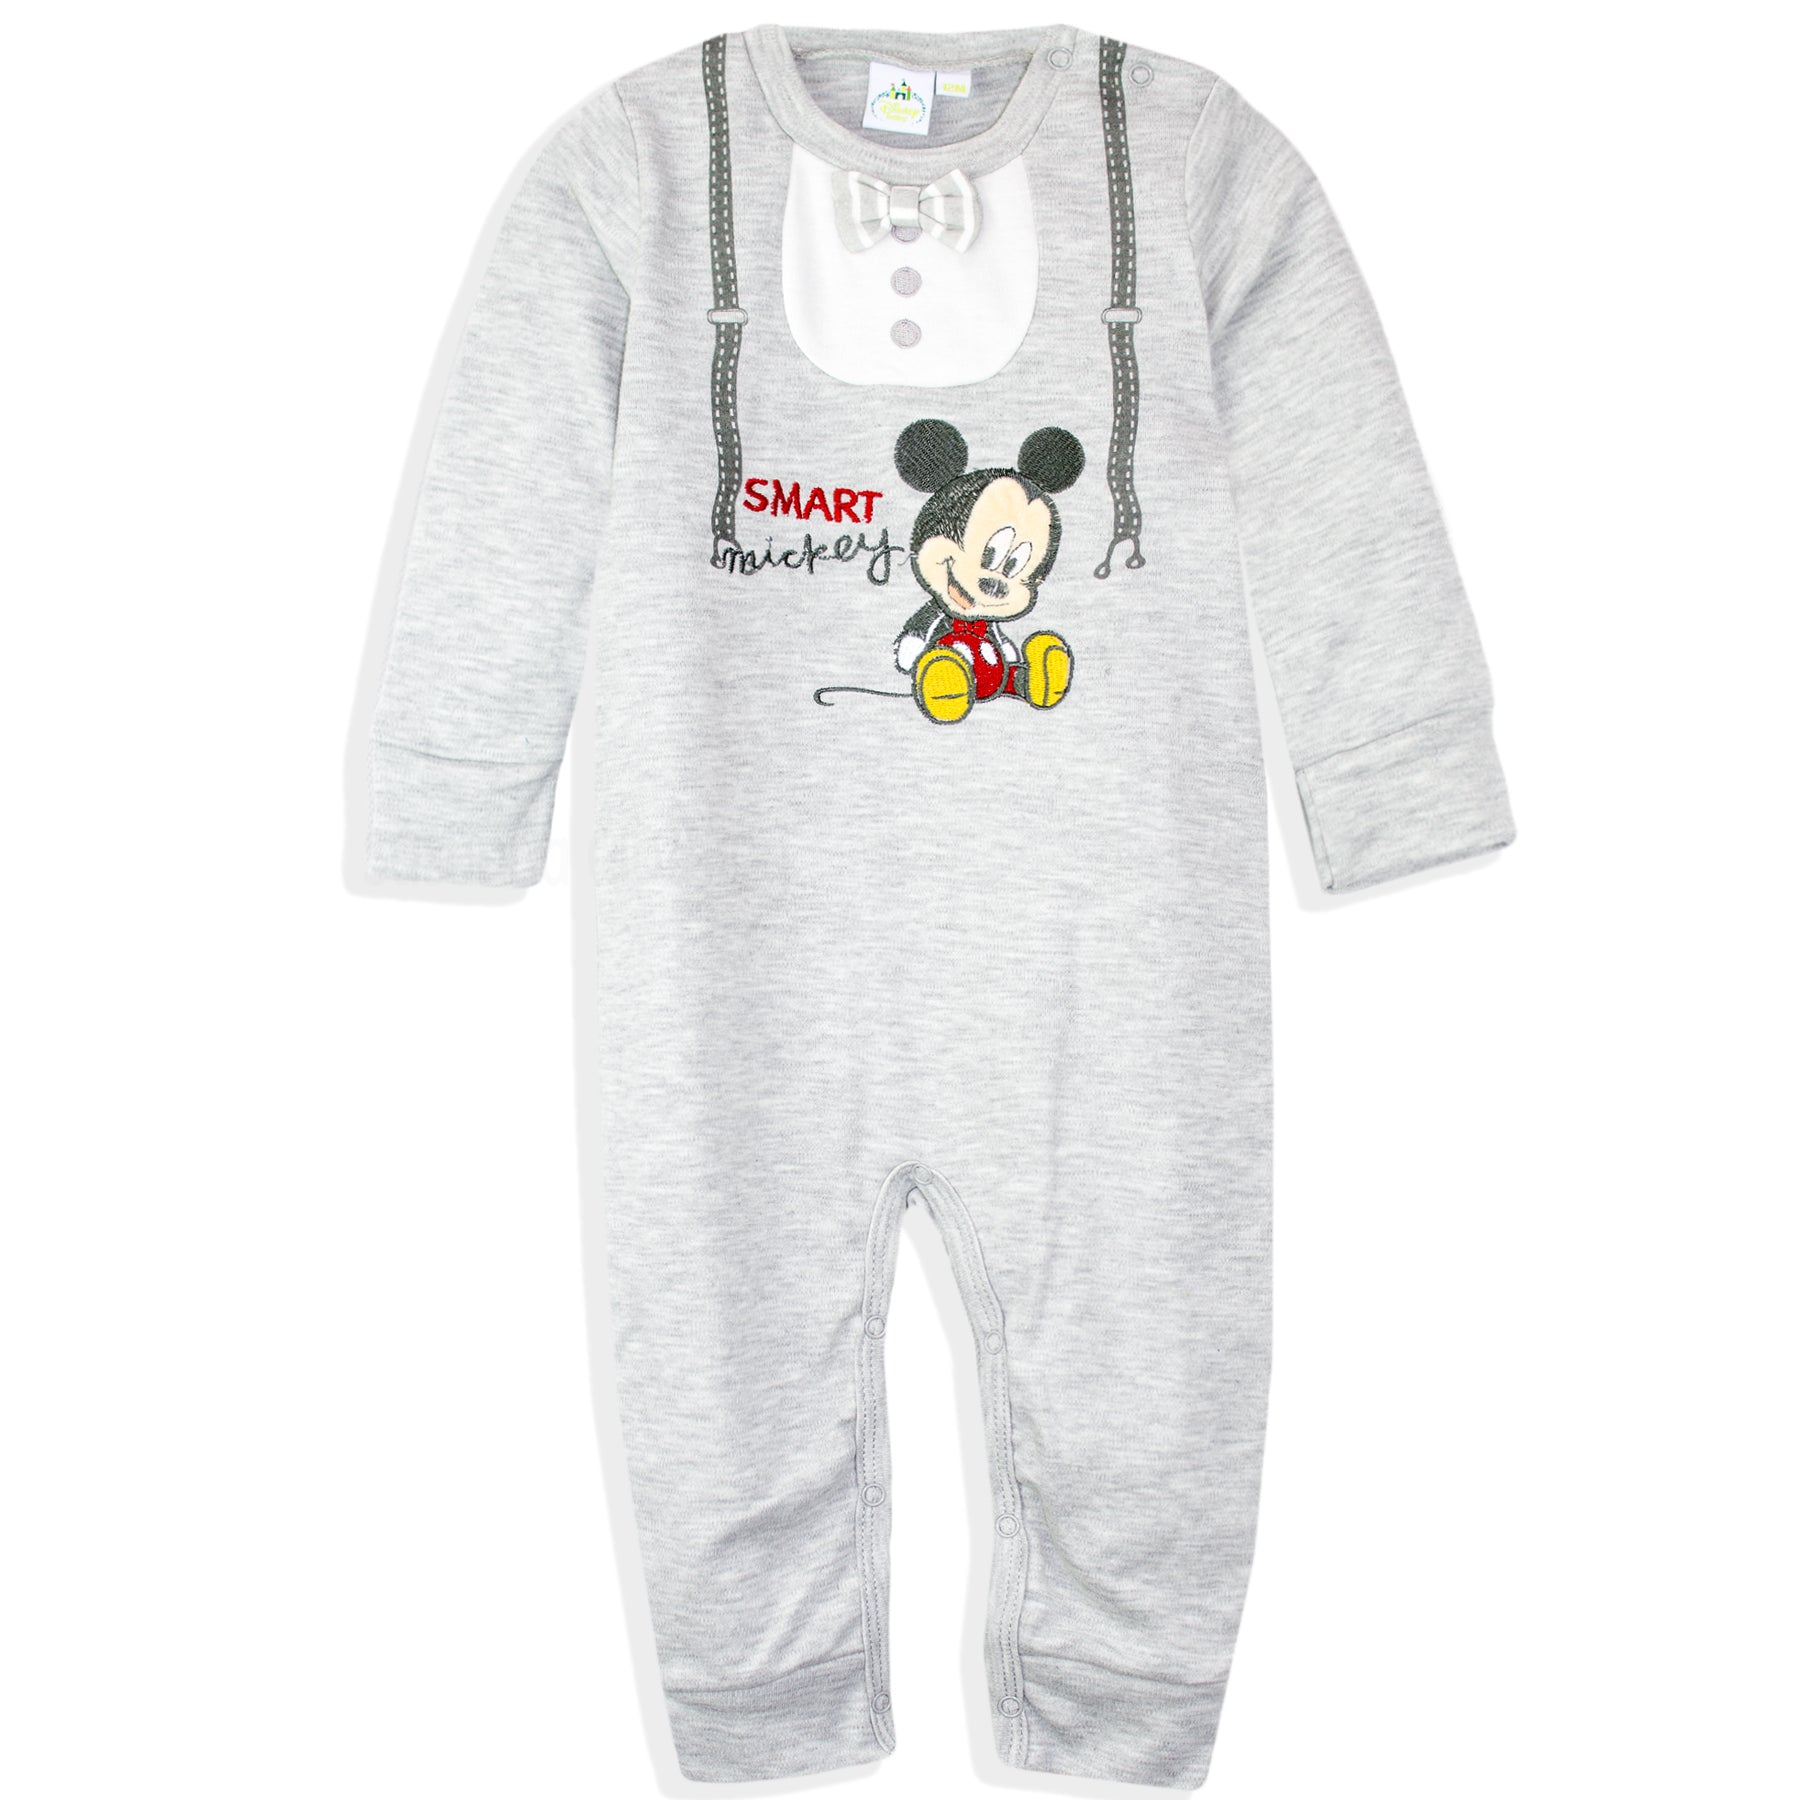 12-18 months Kids Official Disney mickey Mouse Onesie 100/% Cotton